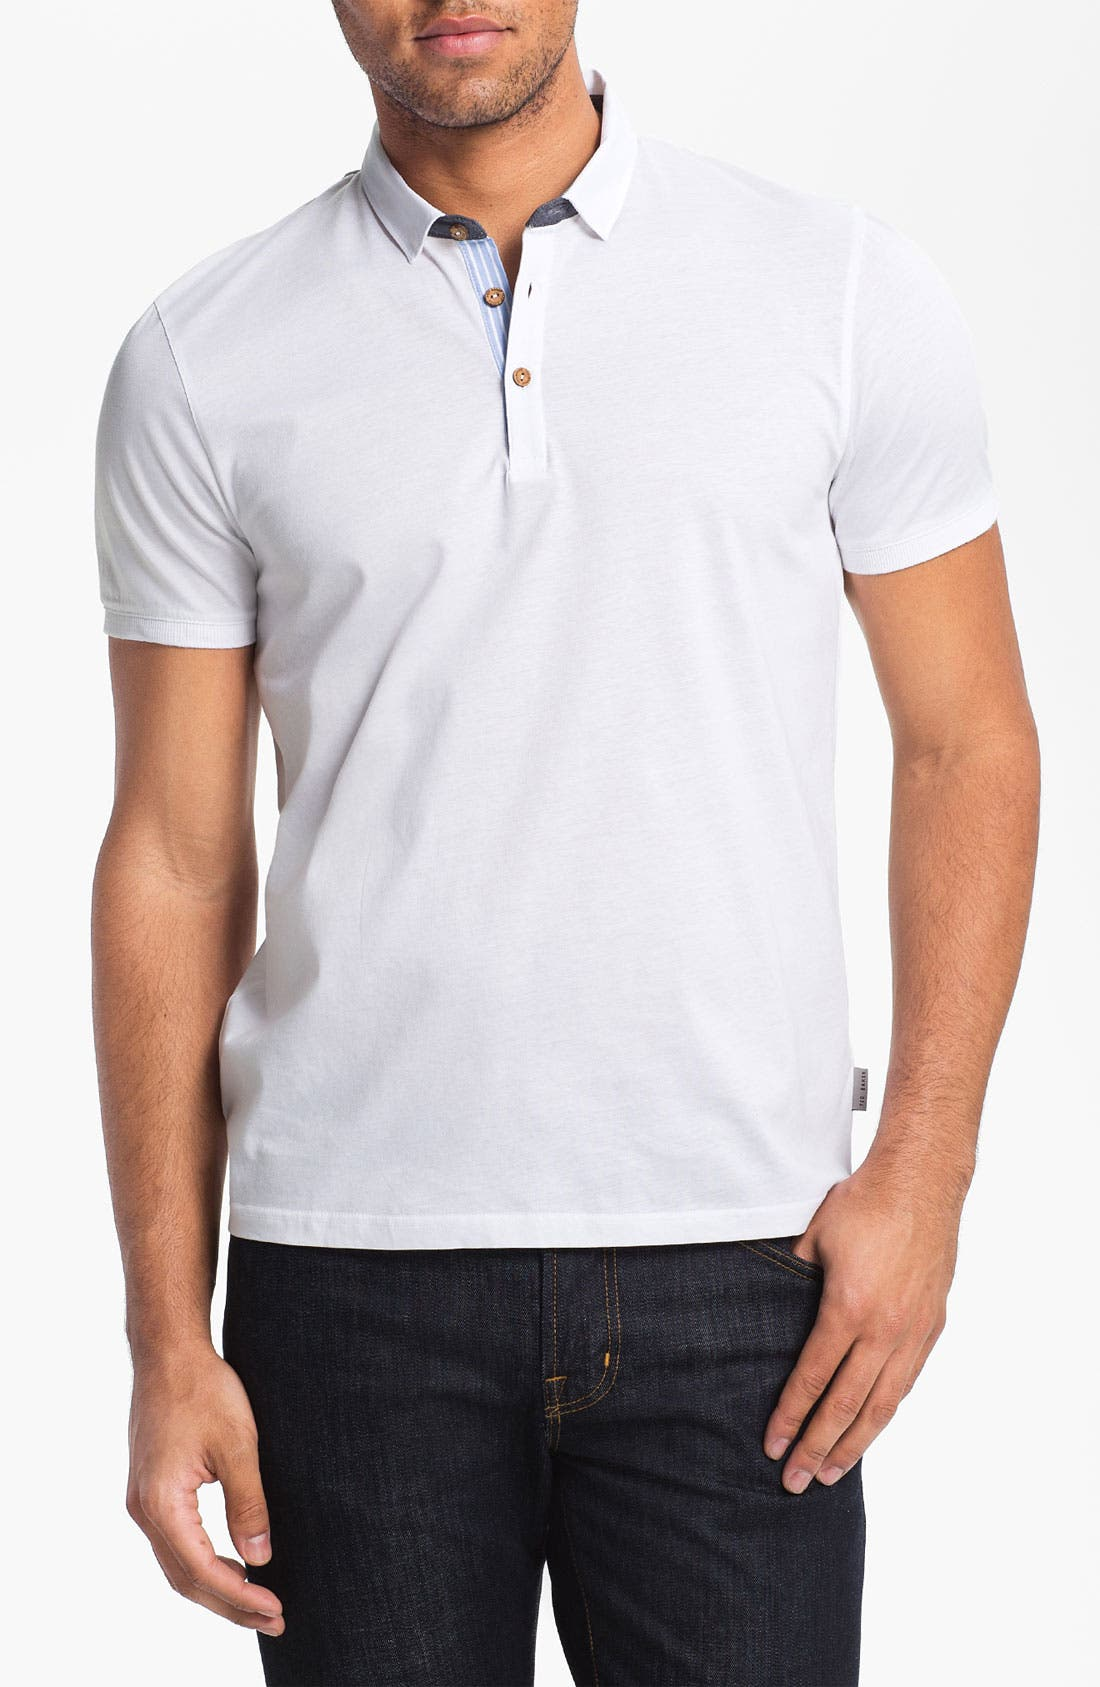 Alternate Image 1 Selected - Ted Baker London 'Newnord' Polo